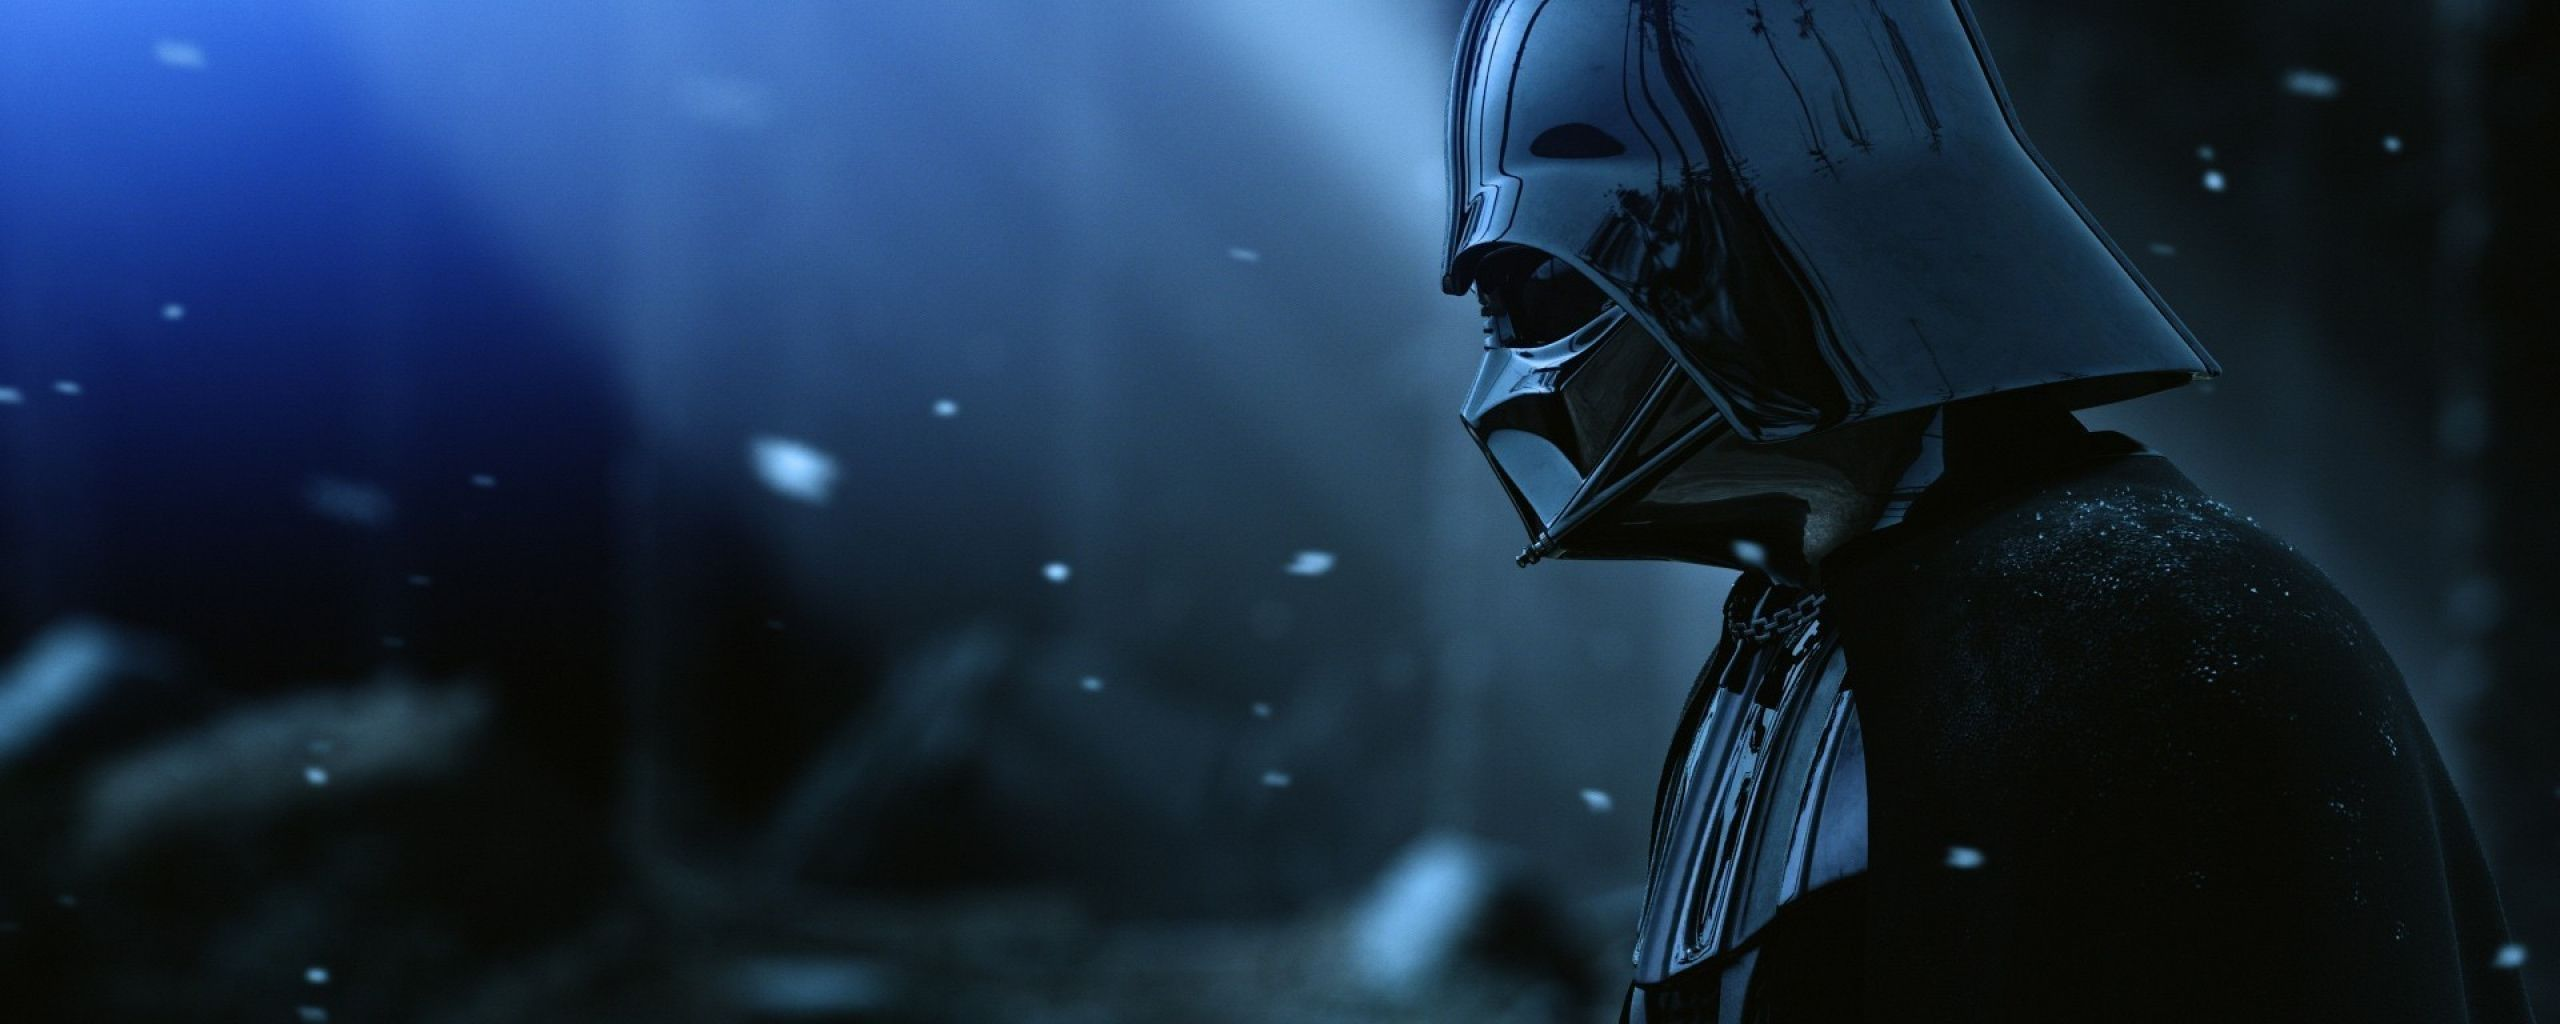 Darth Vader Dual Monitor Wallpapers